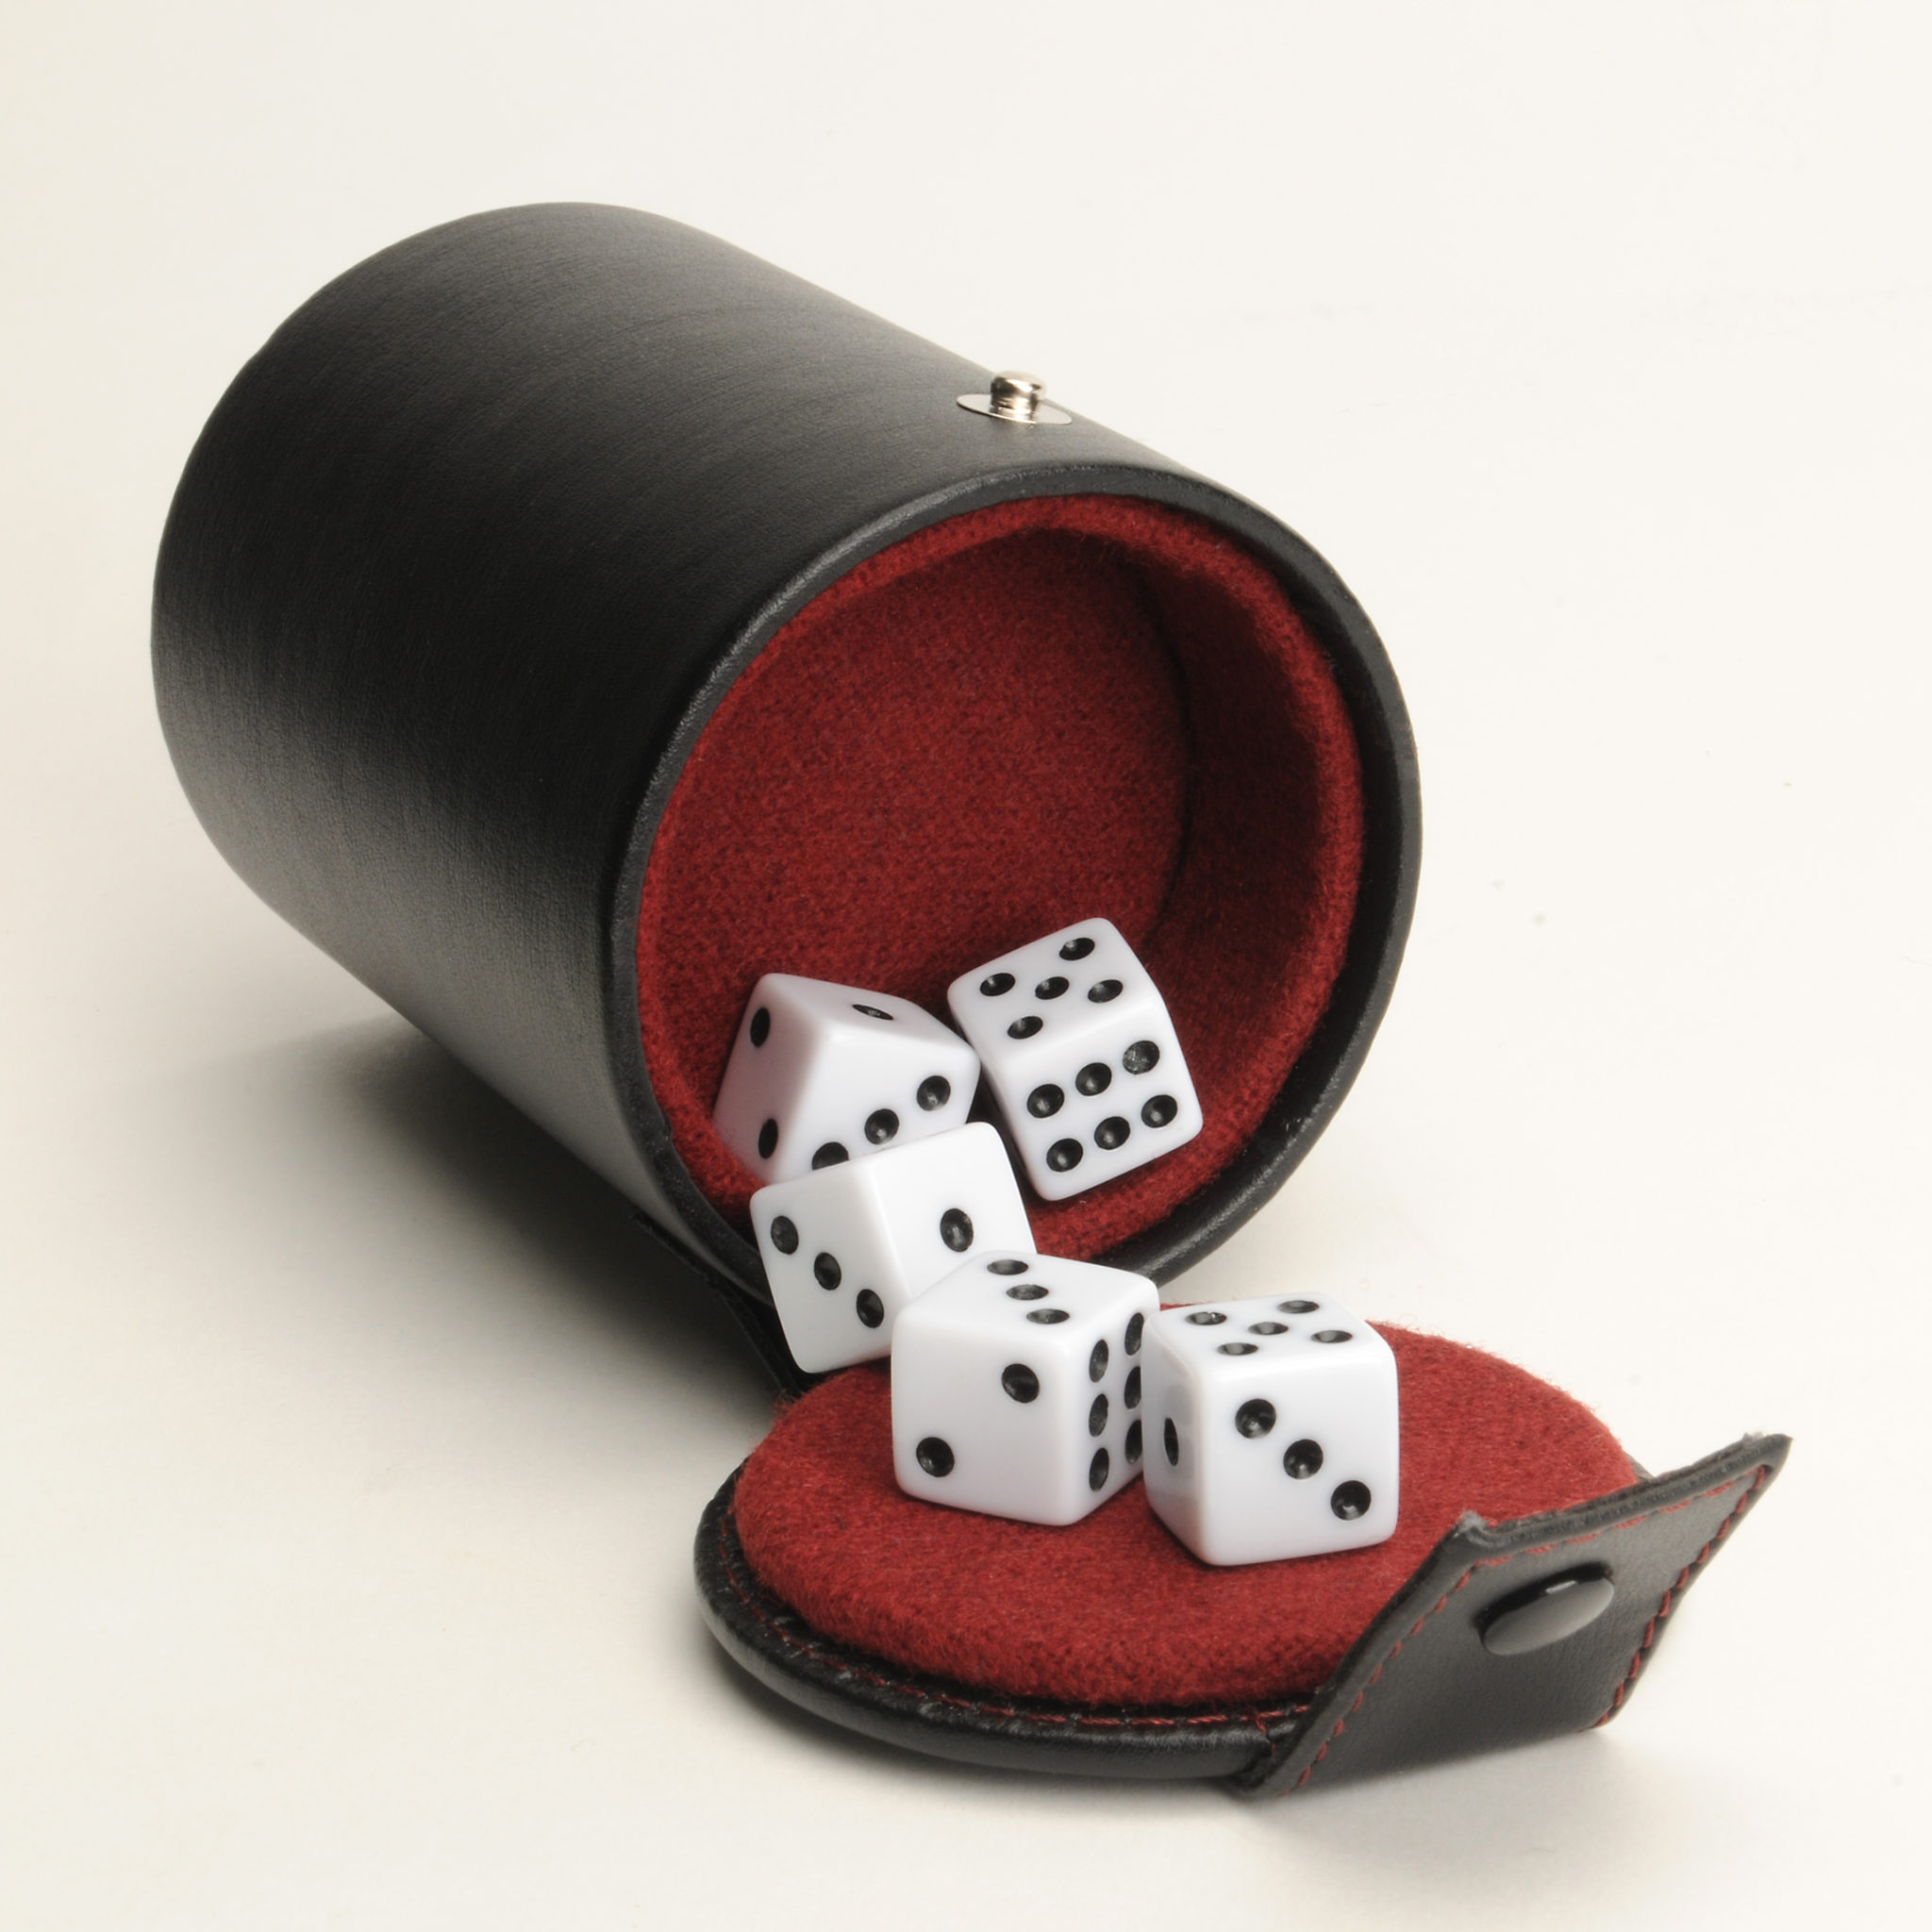 Black Vinyl Dice Cup With Dice And Storage  Wood Expressions - Vinyl dice cup